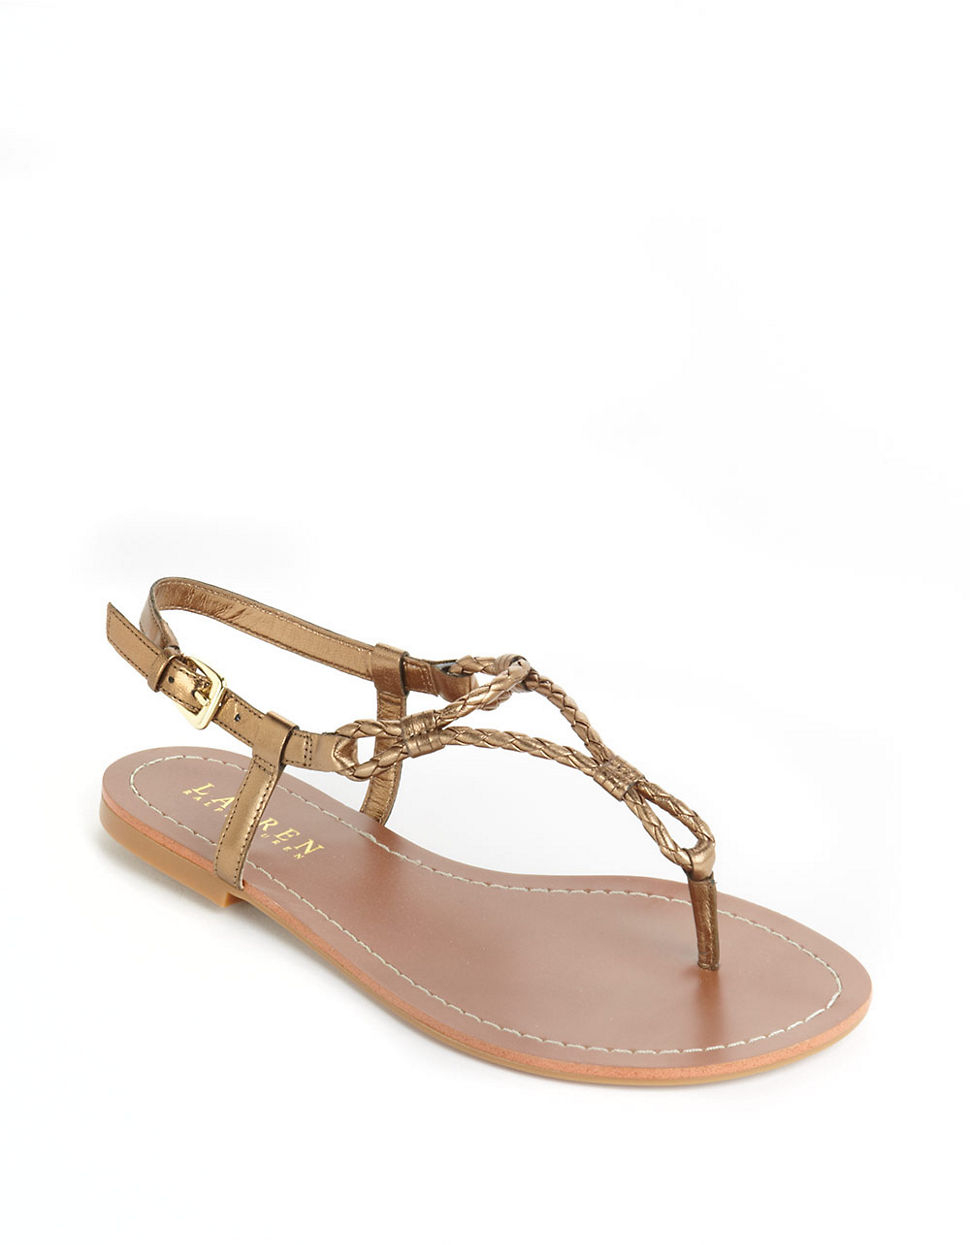 Lauren Ralph Lauren Väskor : Lauren by ralph alexa braided flip flop sandals in